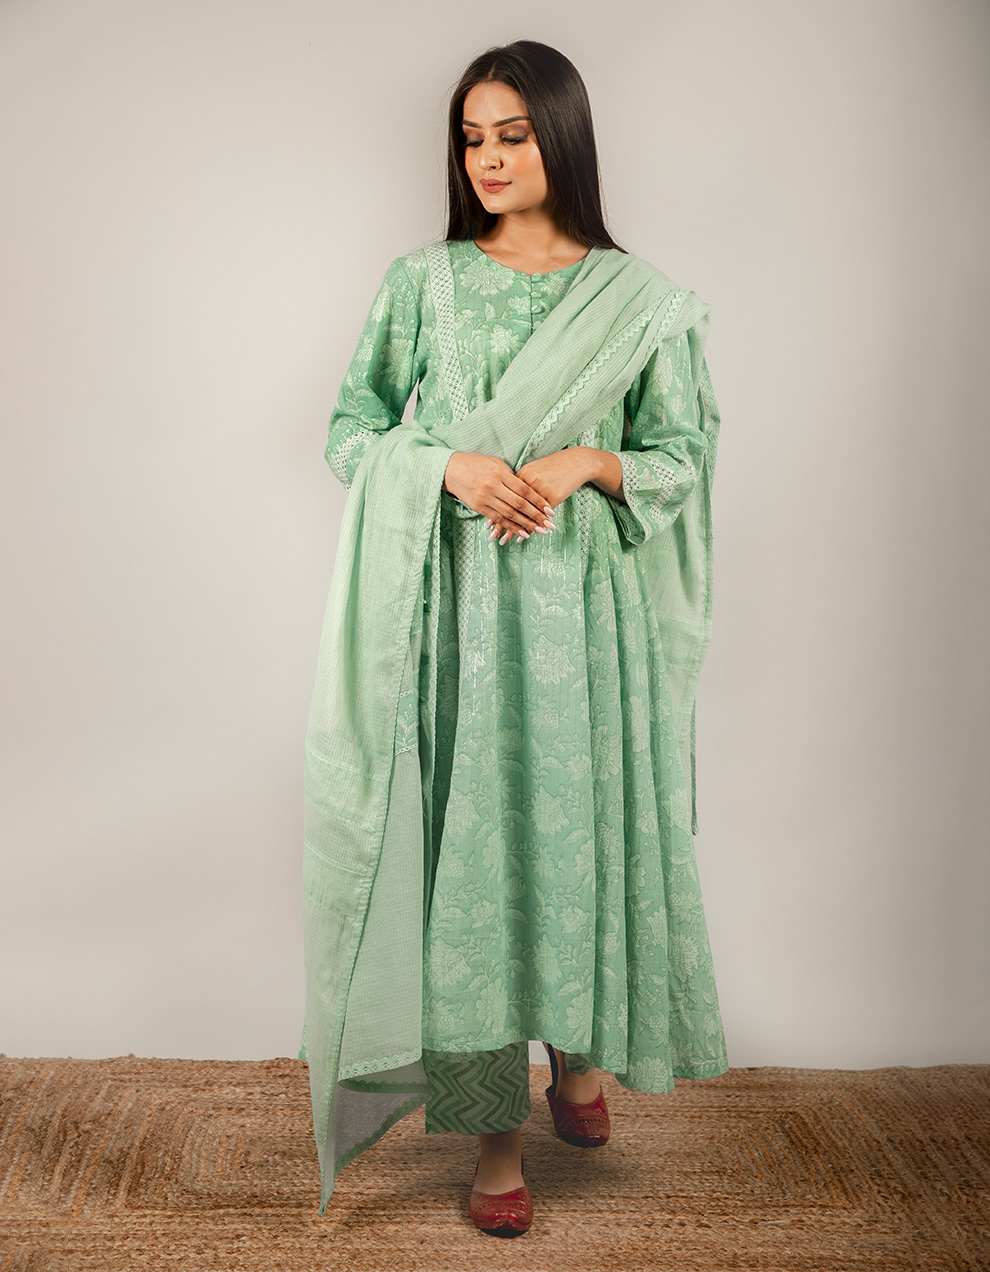 Green Dupatta with Lace